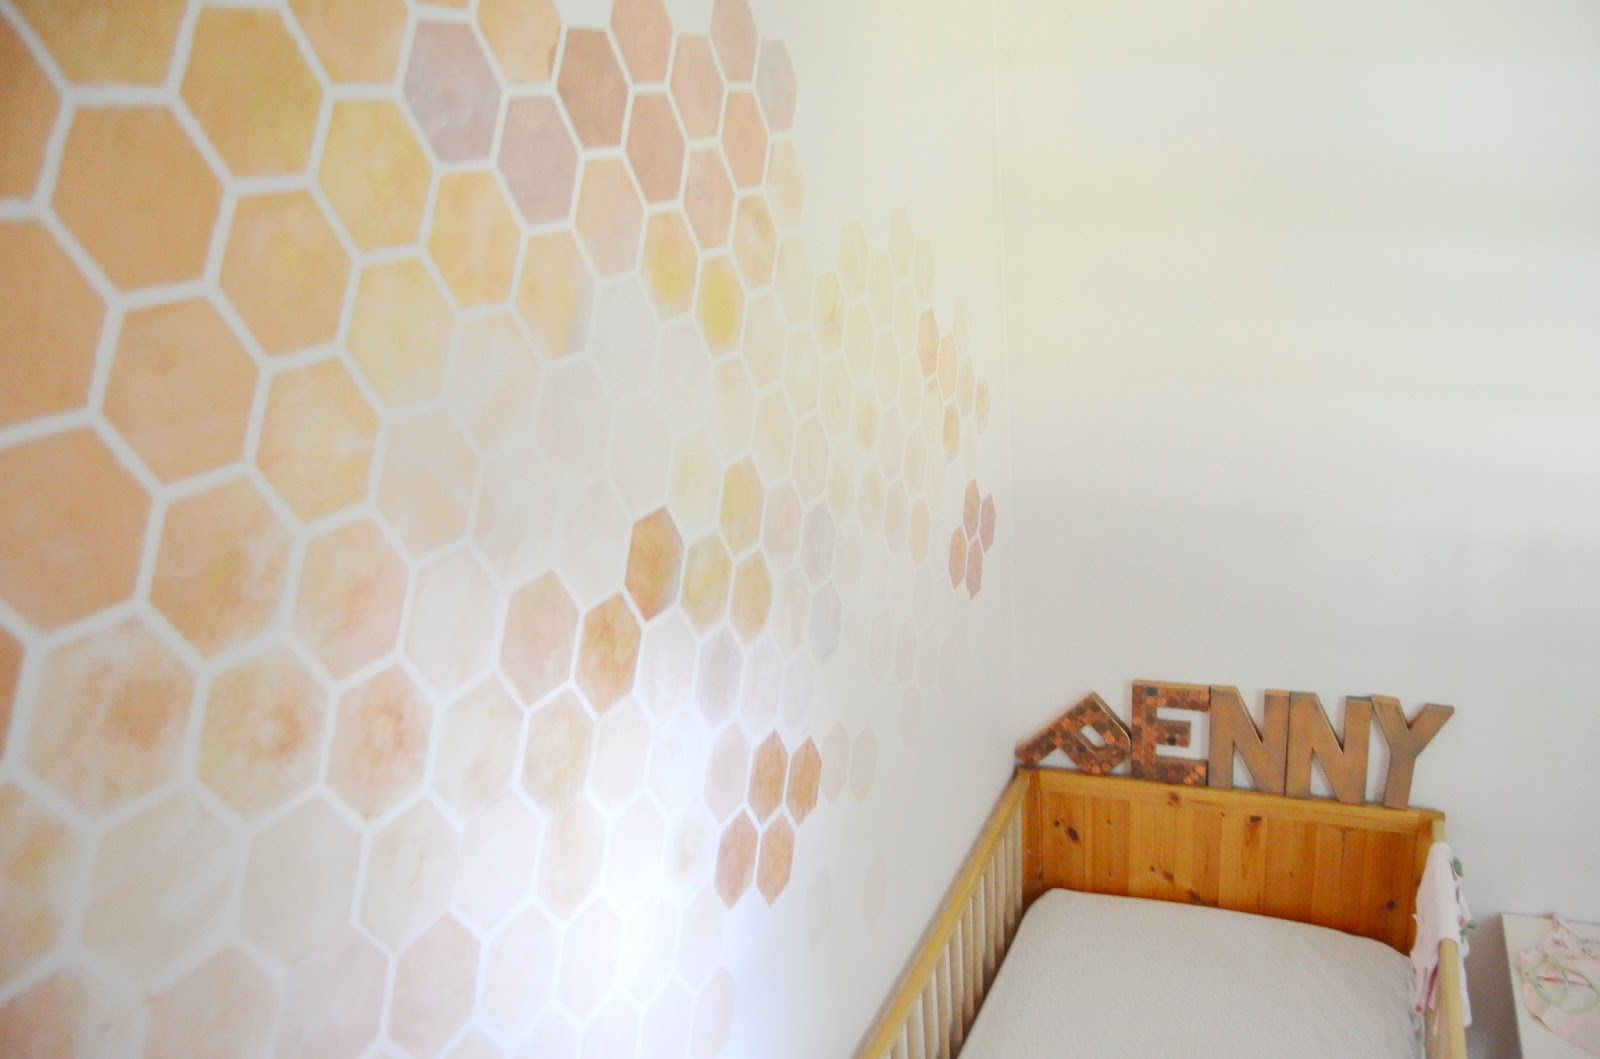 Honeycomb wall stencil choice image home wall decoration ideas 20 best ideas space stencils for walls wall art ideas honeycomb wall stencil diy step 1 to a girly nursery with space stencils for amipublicfo amipublicfo Image collections